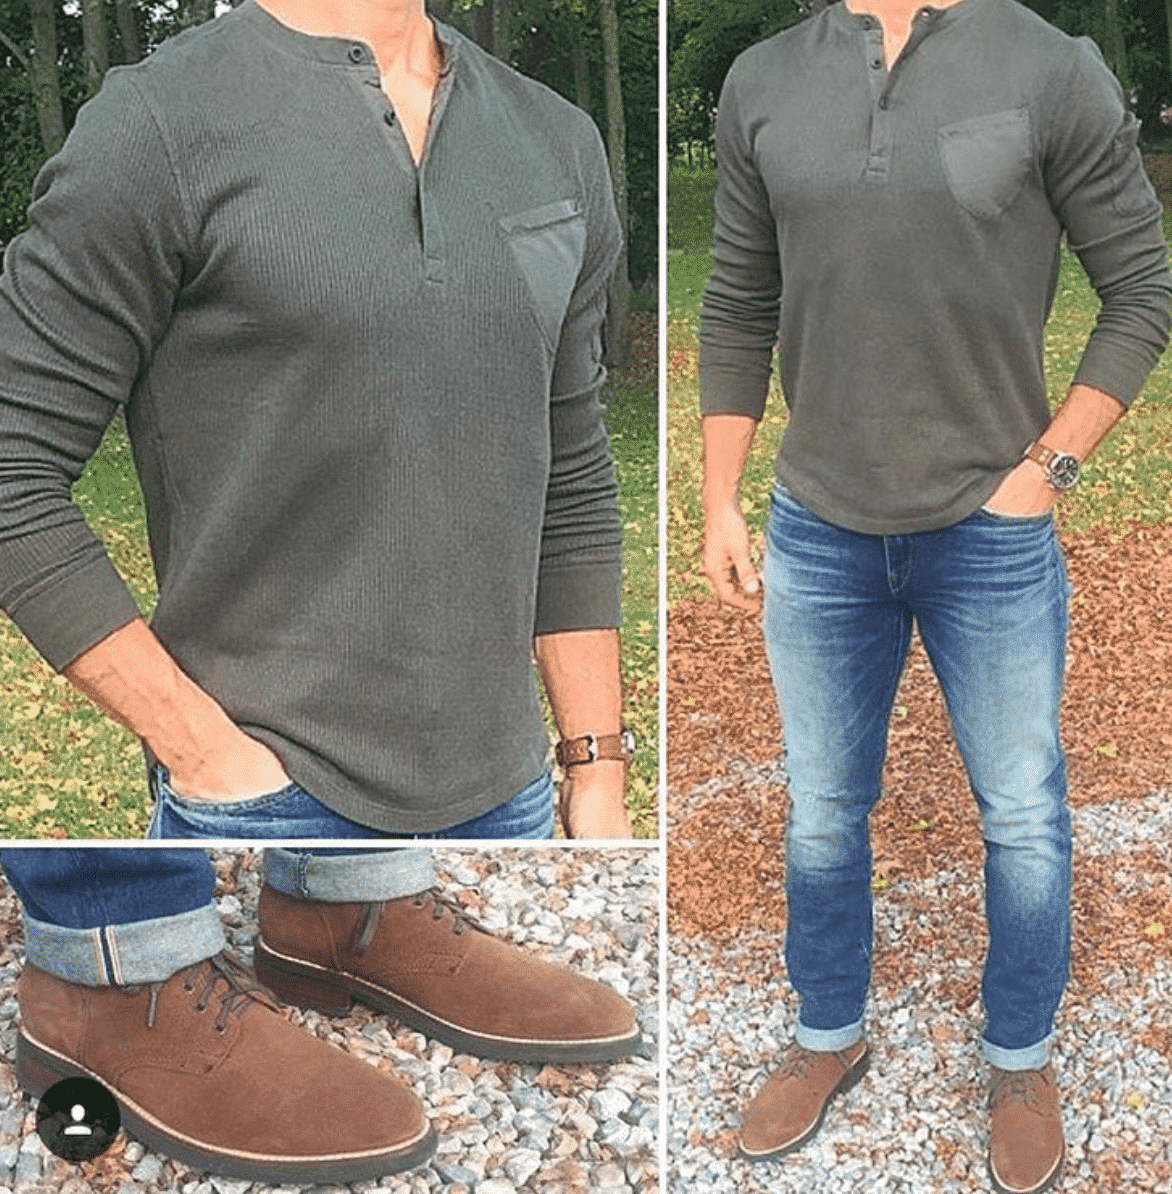 latest-fashion-ideas-for-men-pinterest Brown Boots Outfit for Men-30 Ways to wear Brown Boots